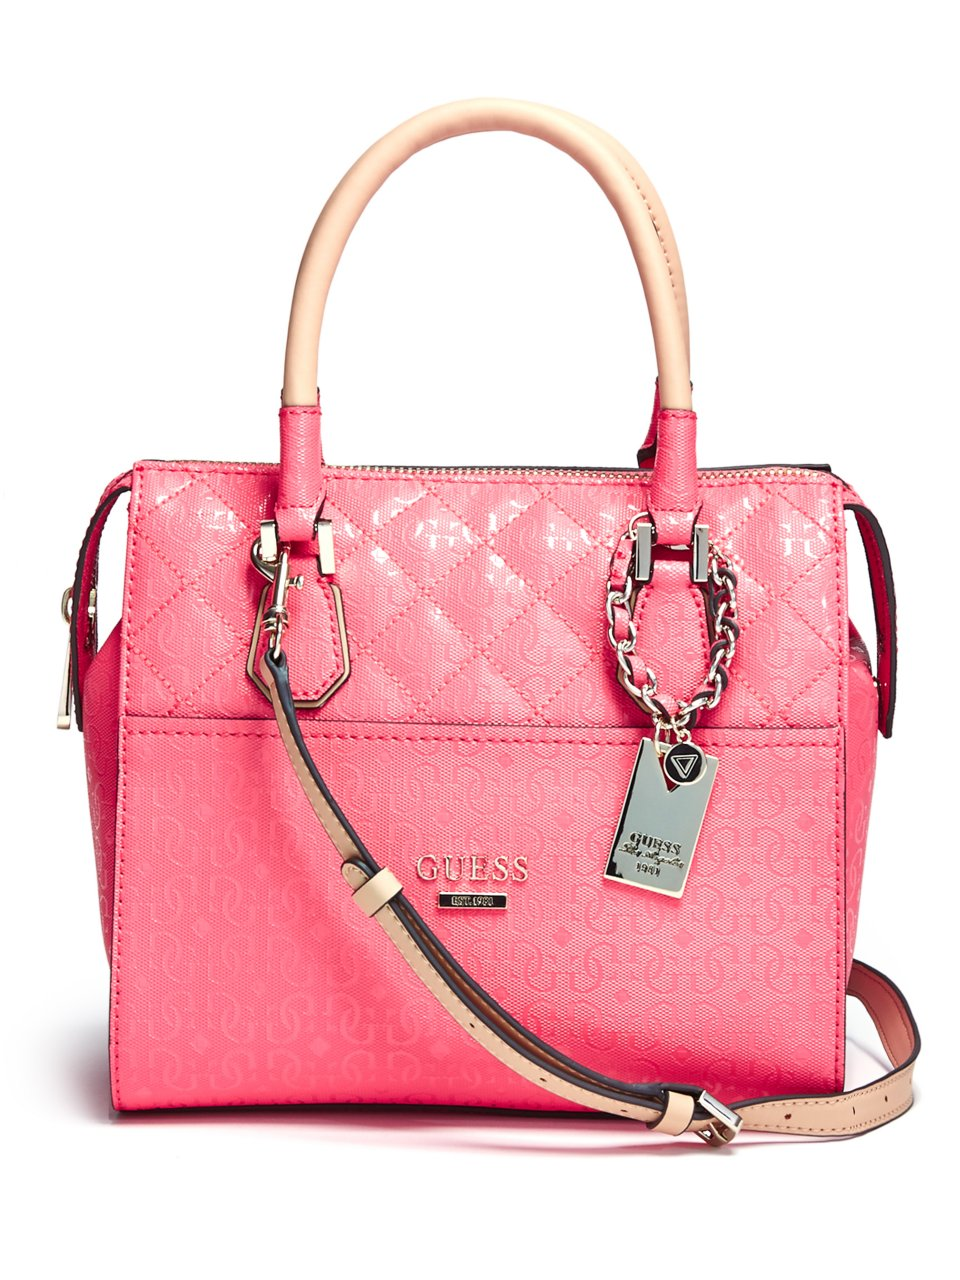 ... Guess Romeo Box Satchel Handbag With Wallet(coral UPC 885935771887  product image for Romeo Box Satchel  c63bc5833989b